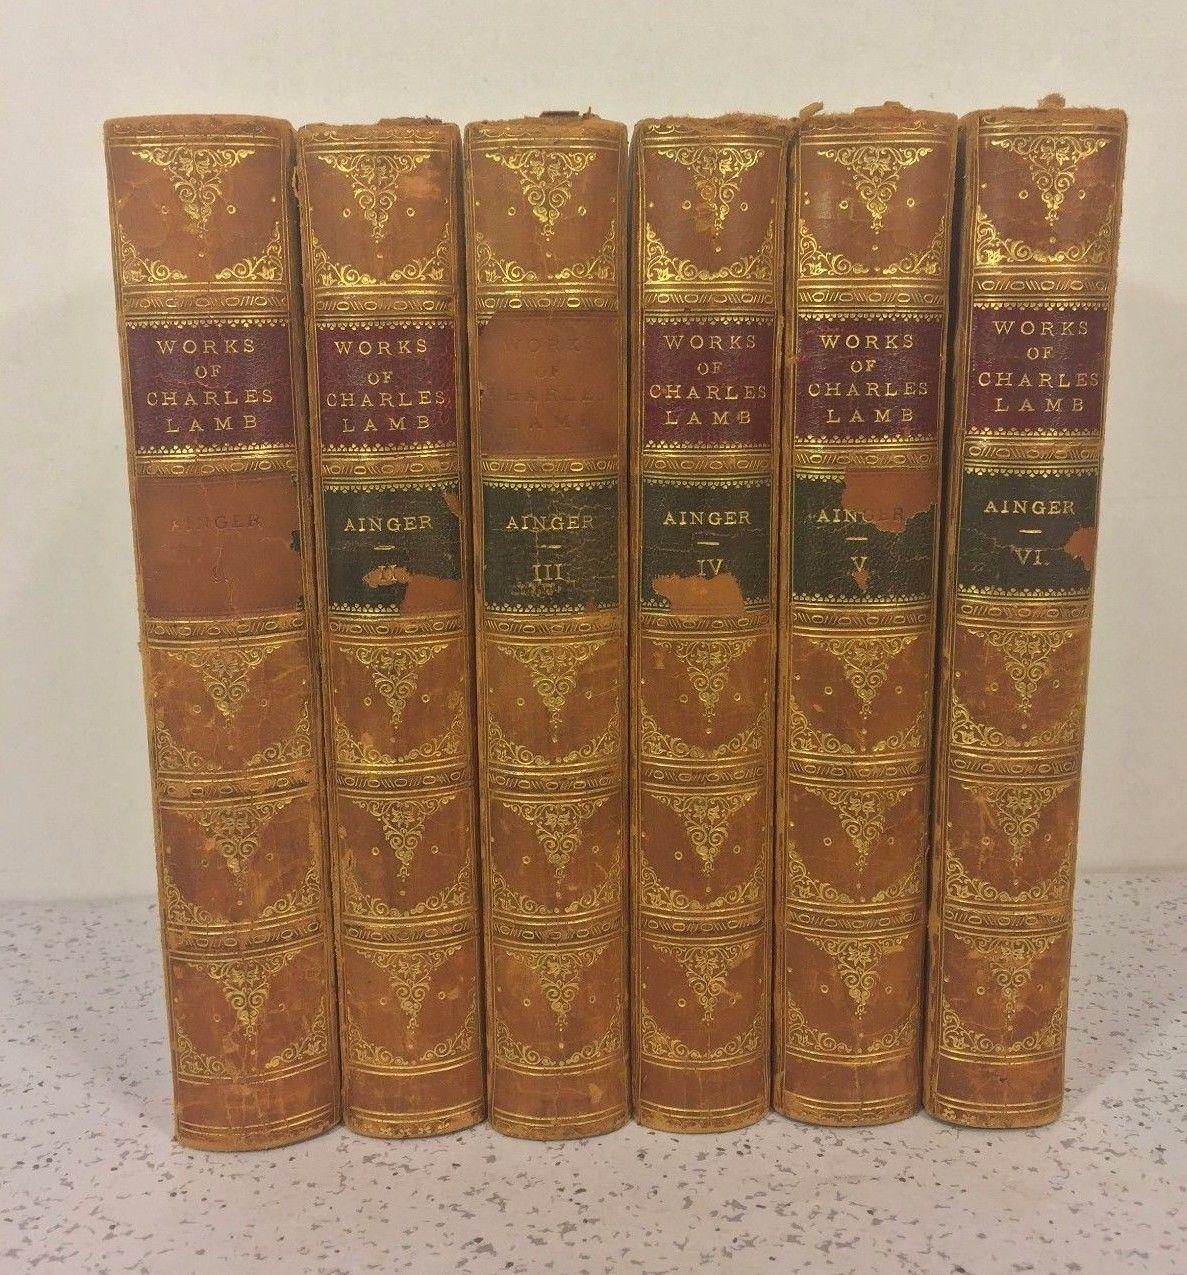 antique books works of charles lamb volumes from roll over large image to magnify click large image to zoom